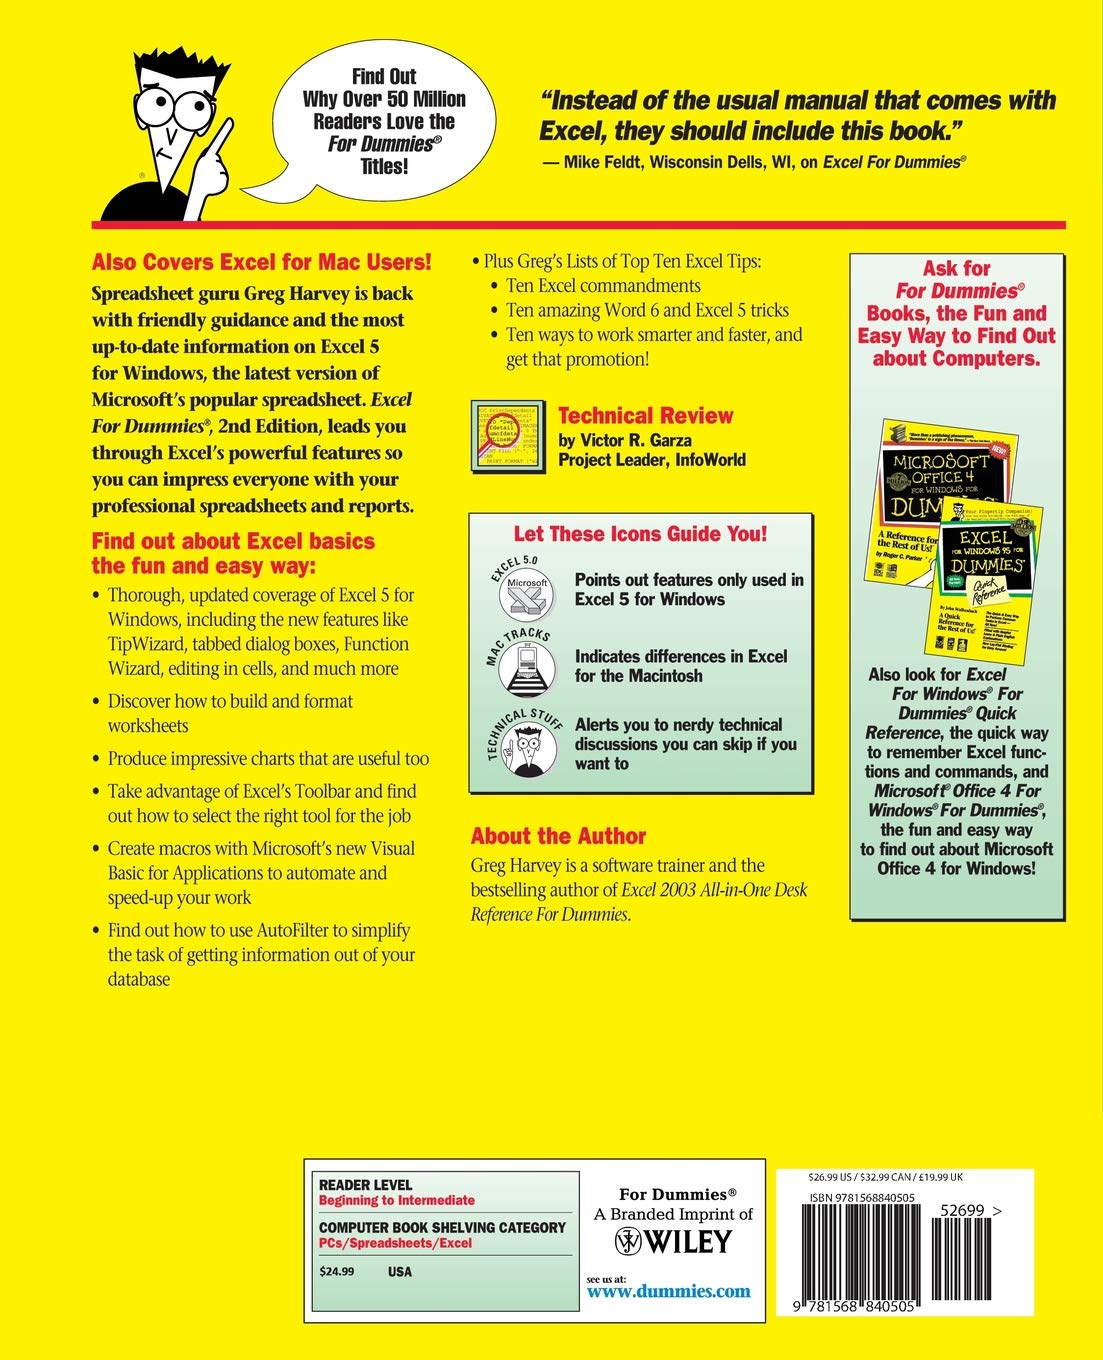 Buy Excel For Dummies (For Dummies Computer Book Series